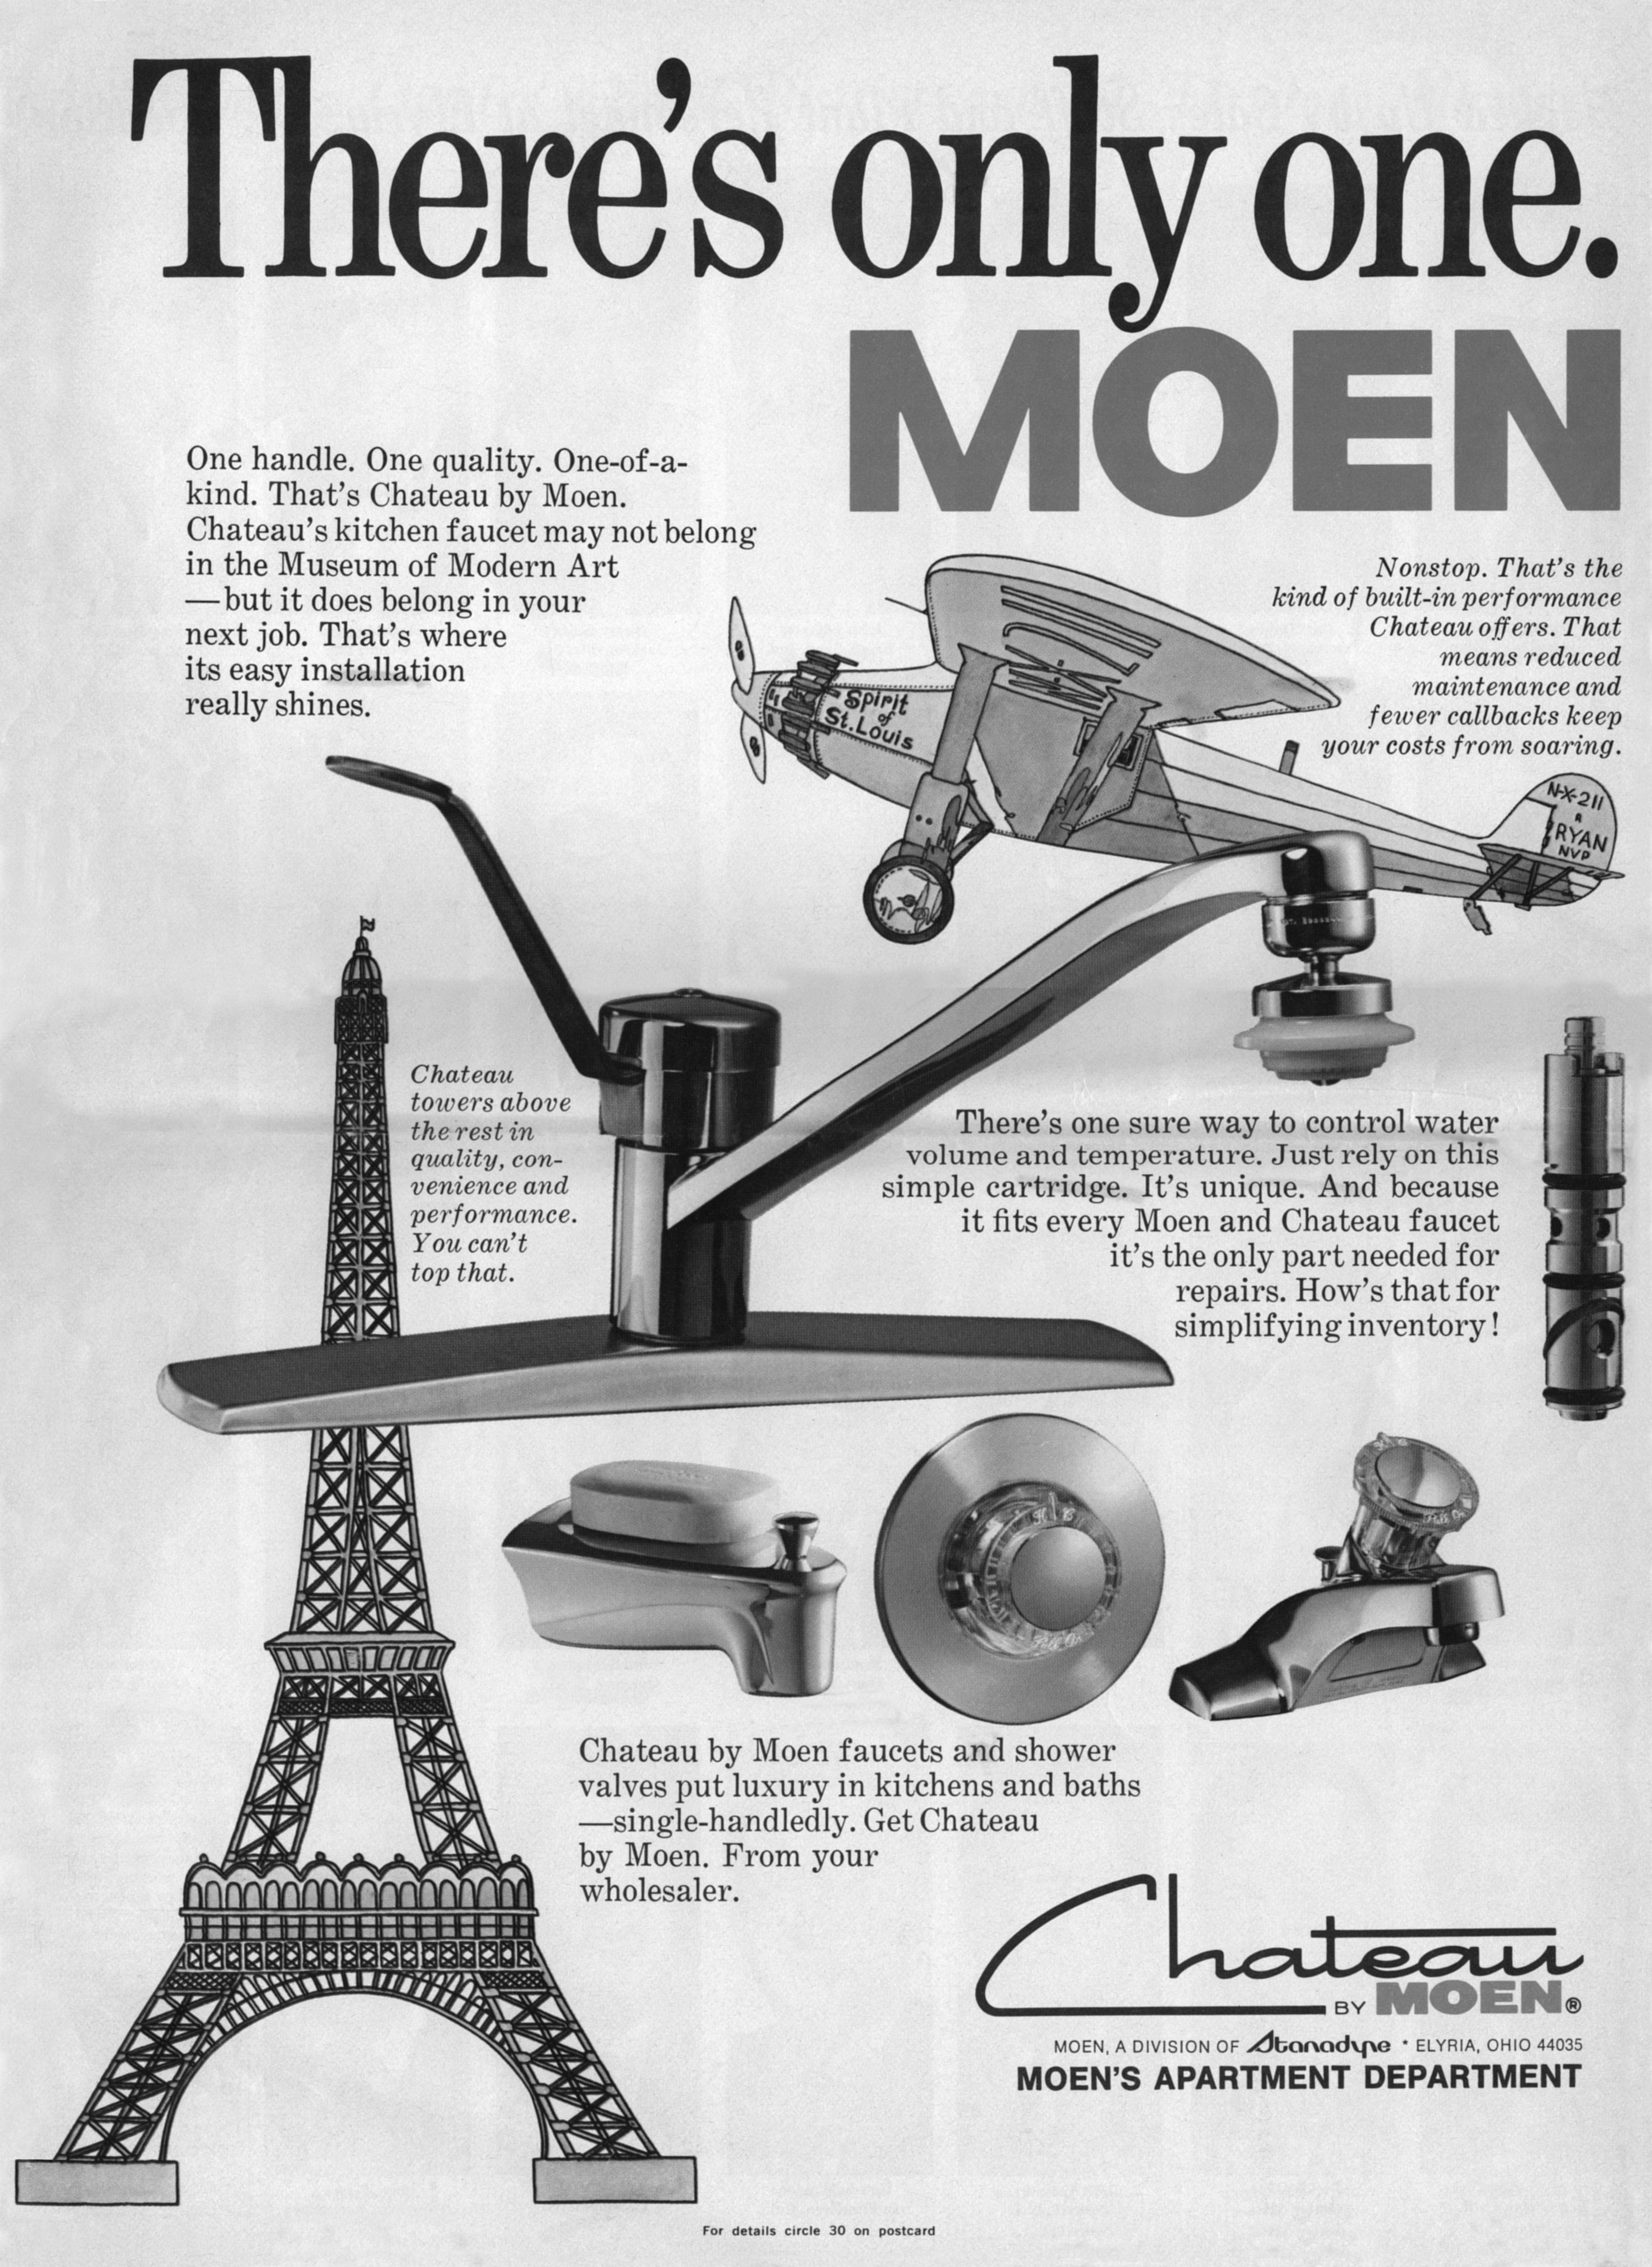 Moen Legend Kitchen Faucet Moen Takes Flight With The Single Handle Faucet Advertising A